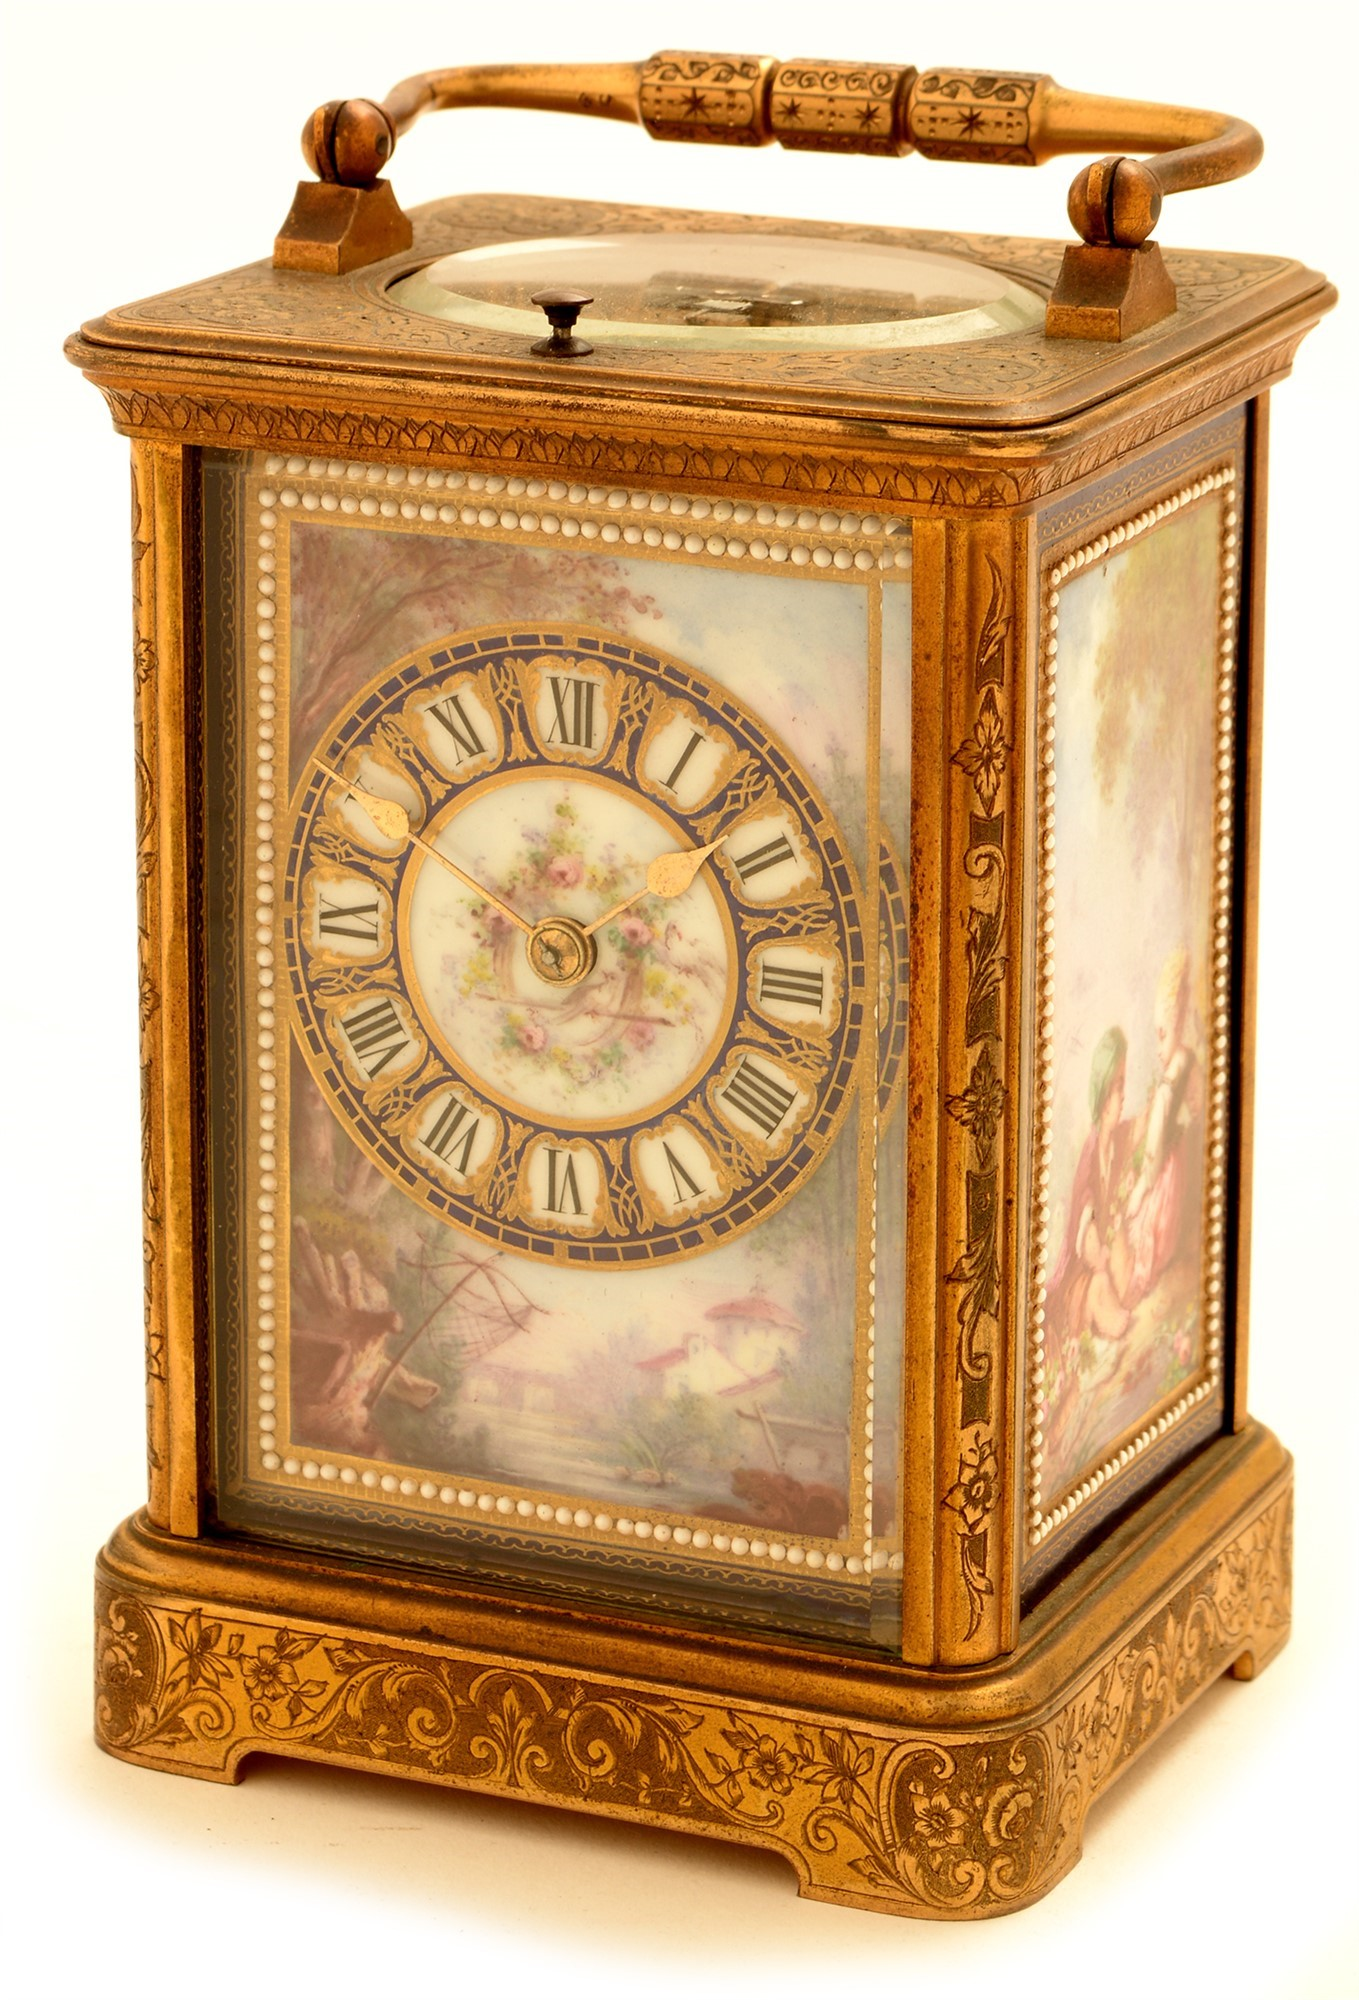 Richard & Co: a brass and porcelain mounted repeating carriage clock